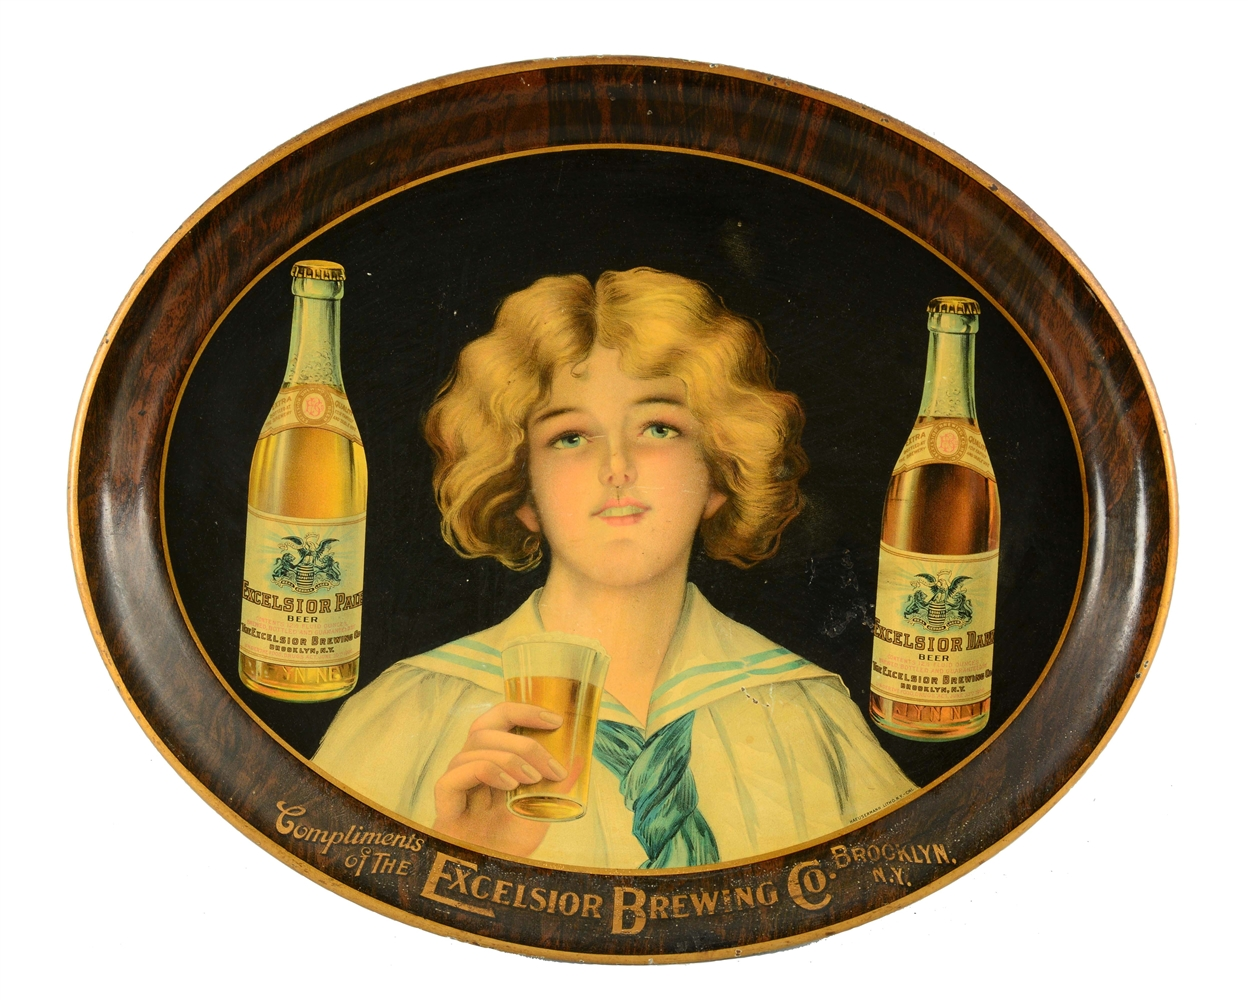 Excelsior Brewing Co. Serving Tray.